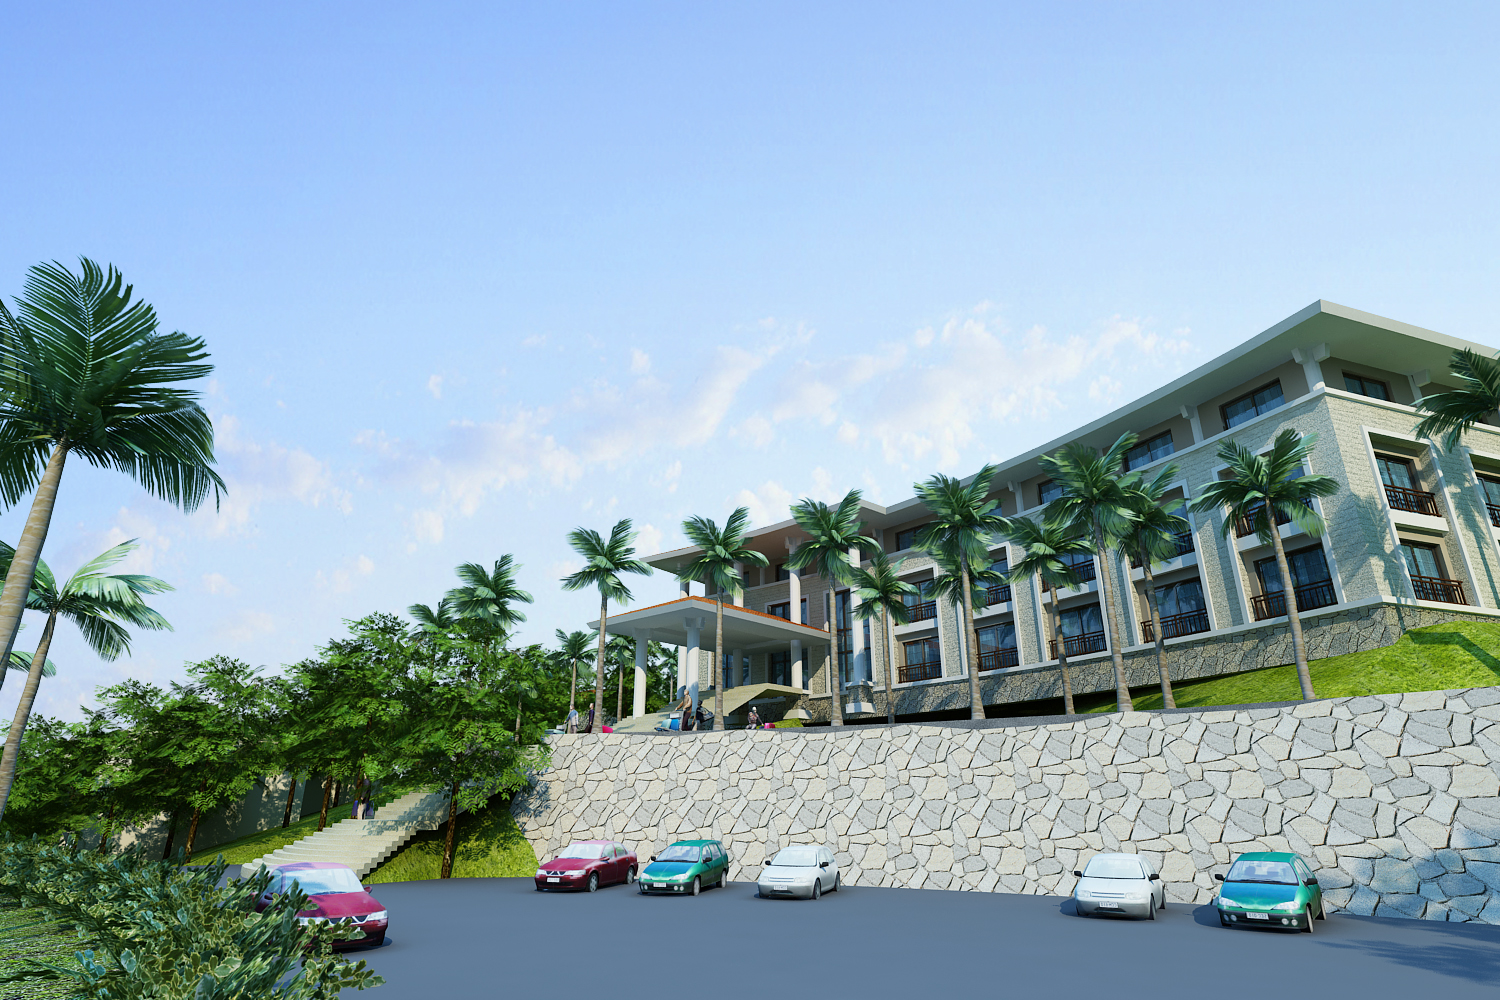 moutain resort hotel 3d model max other 159070